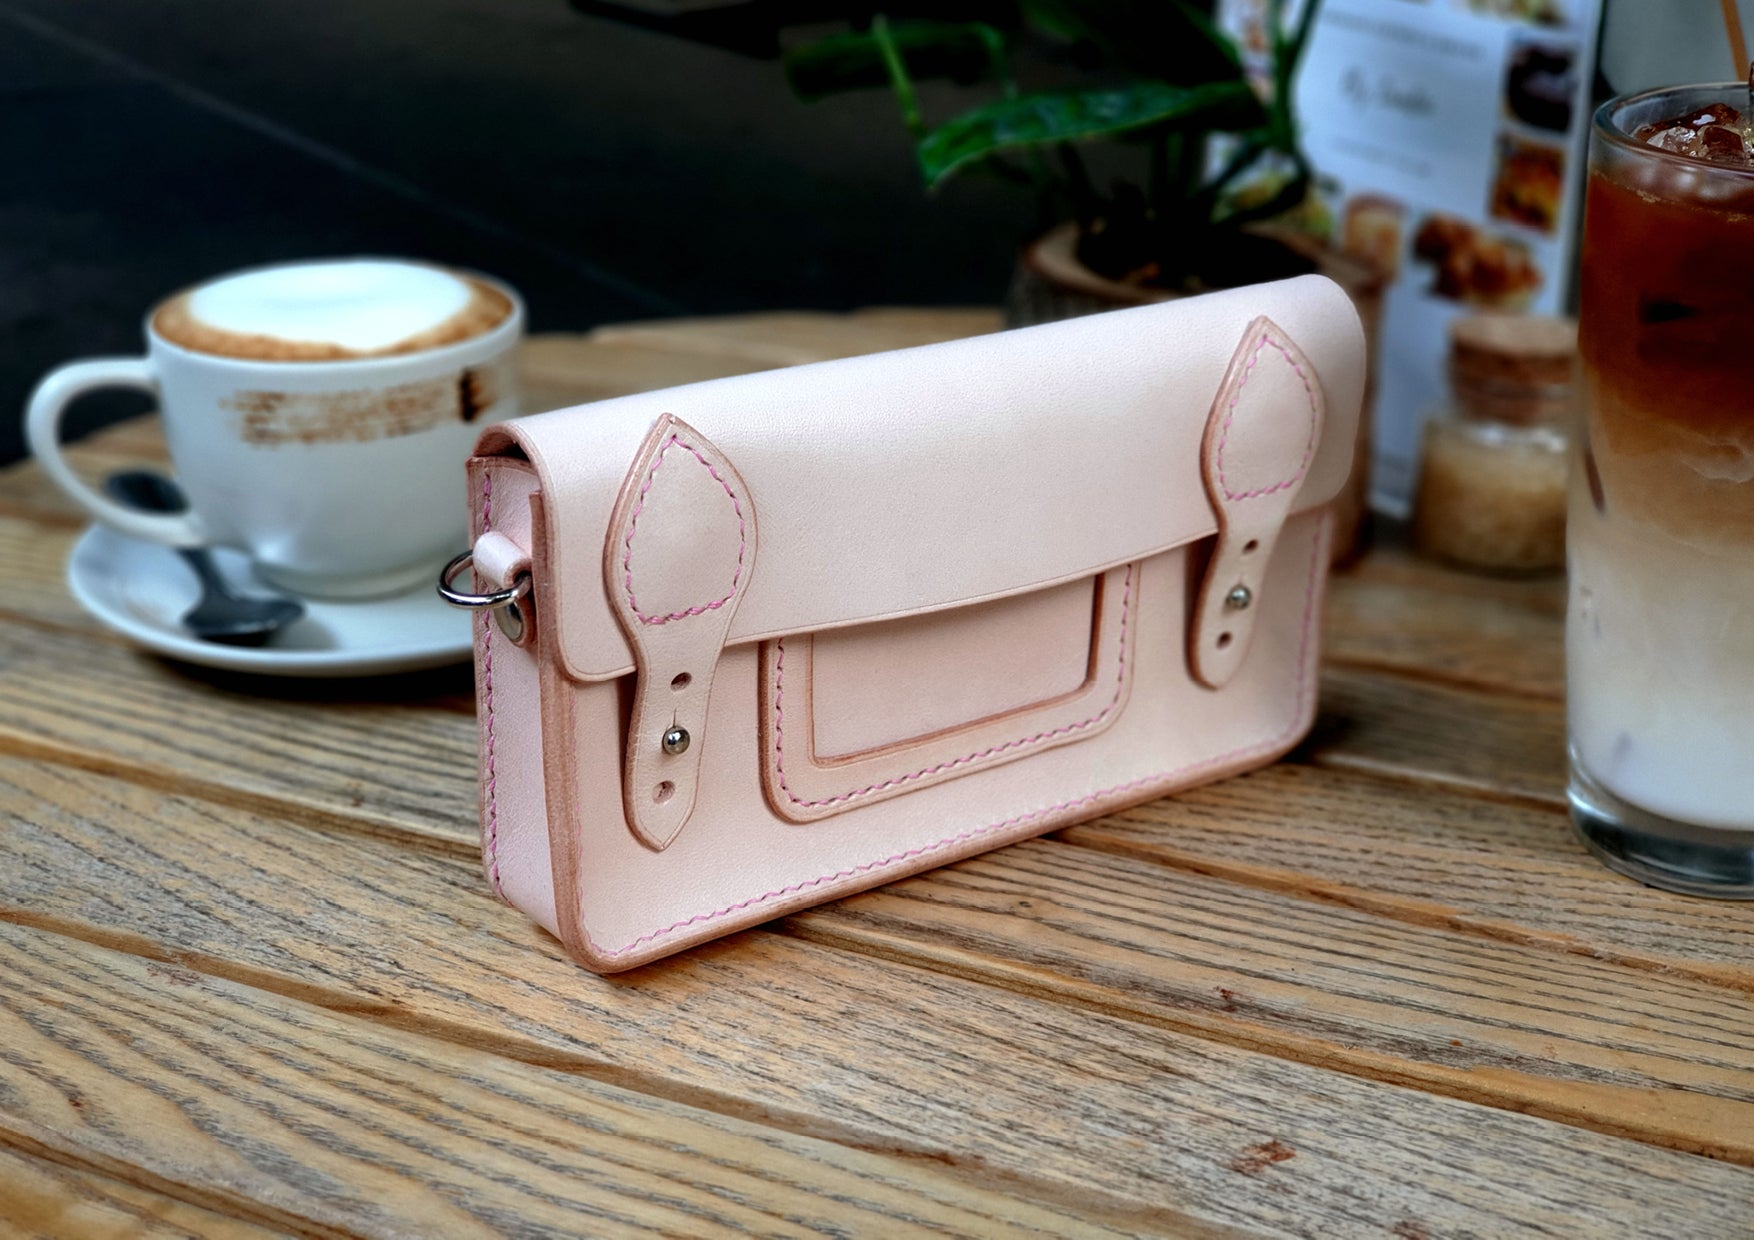 Leather Phone Satchel Pattern